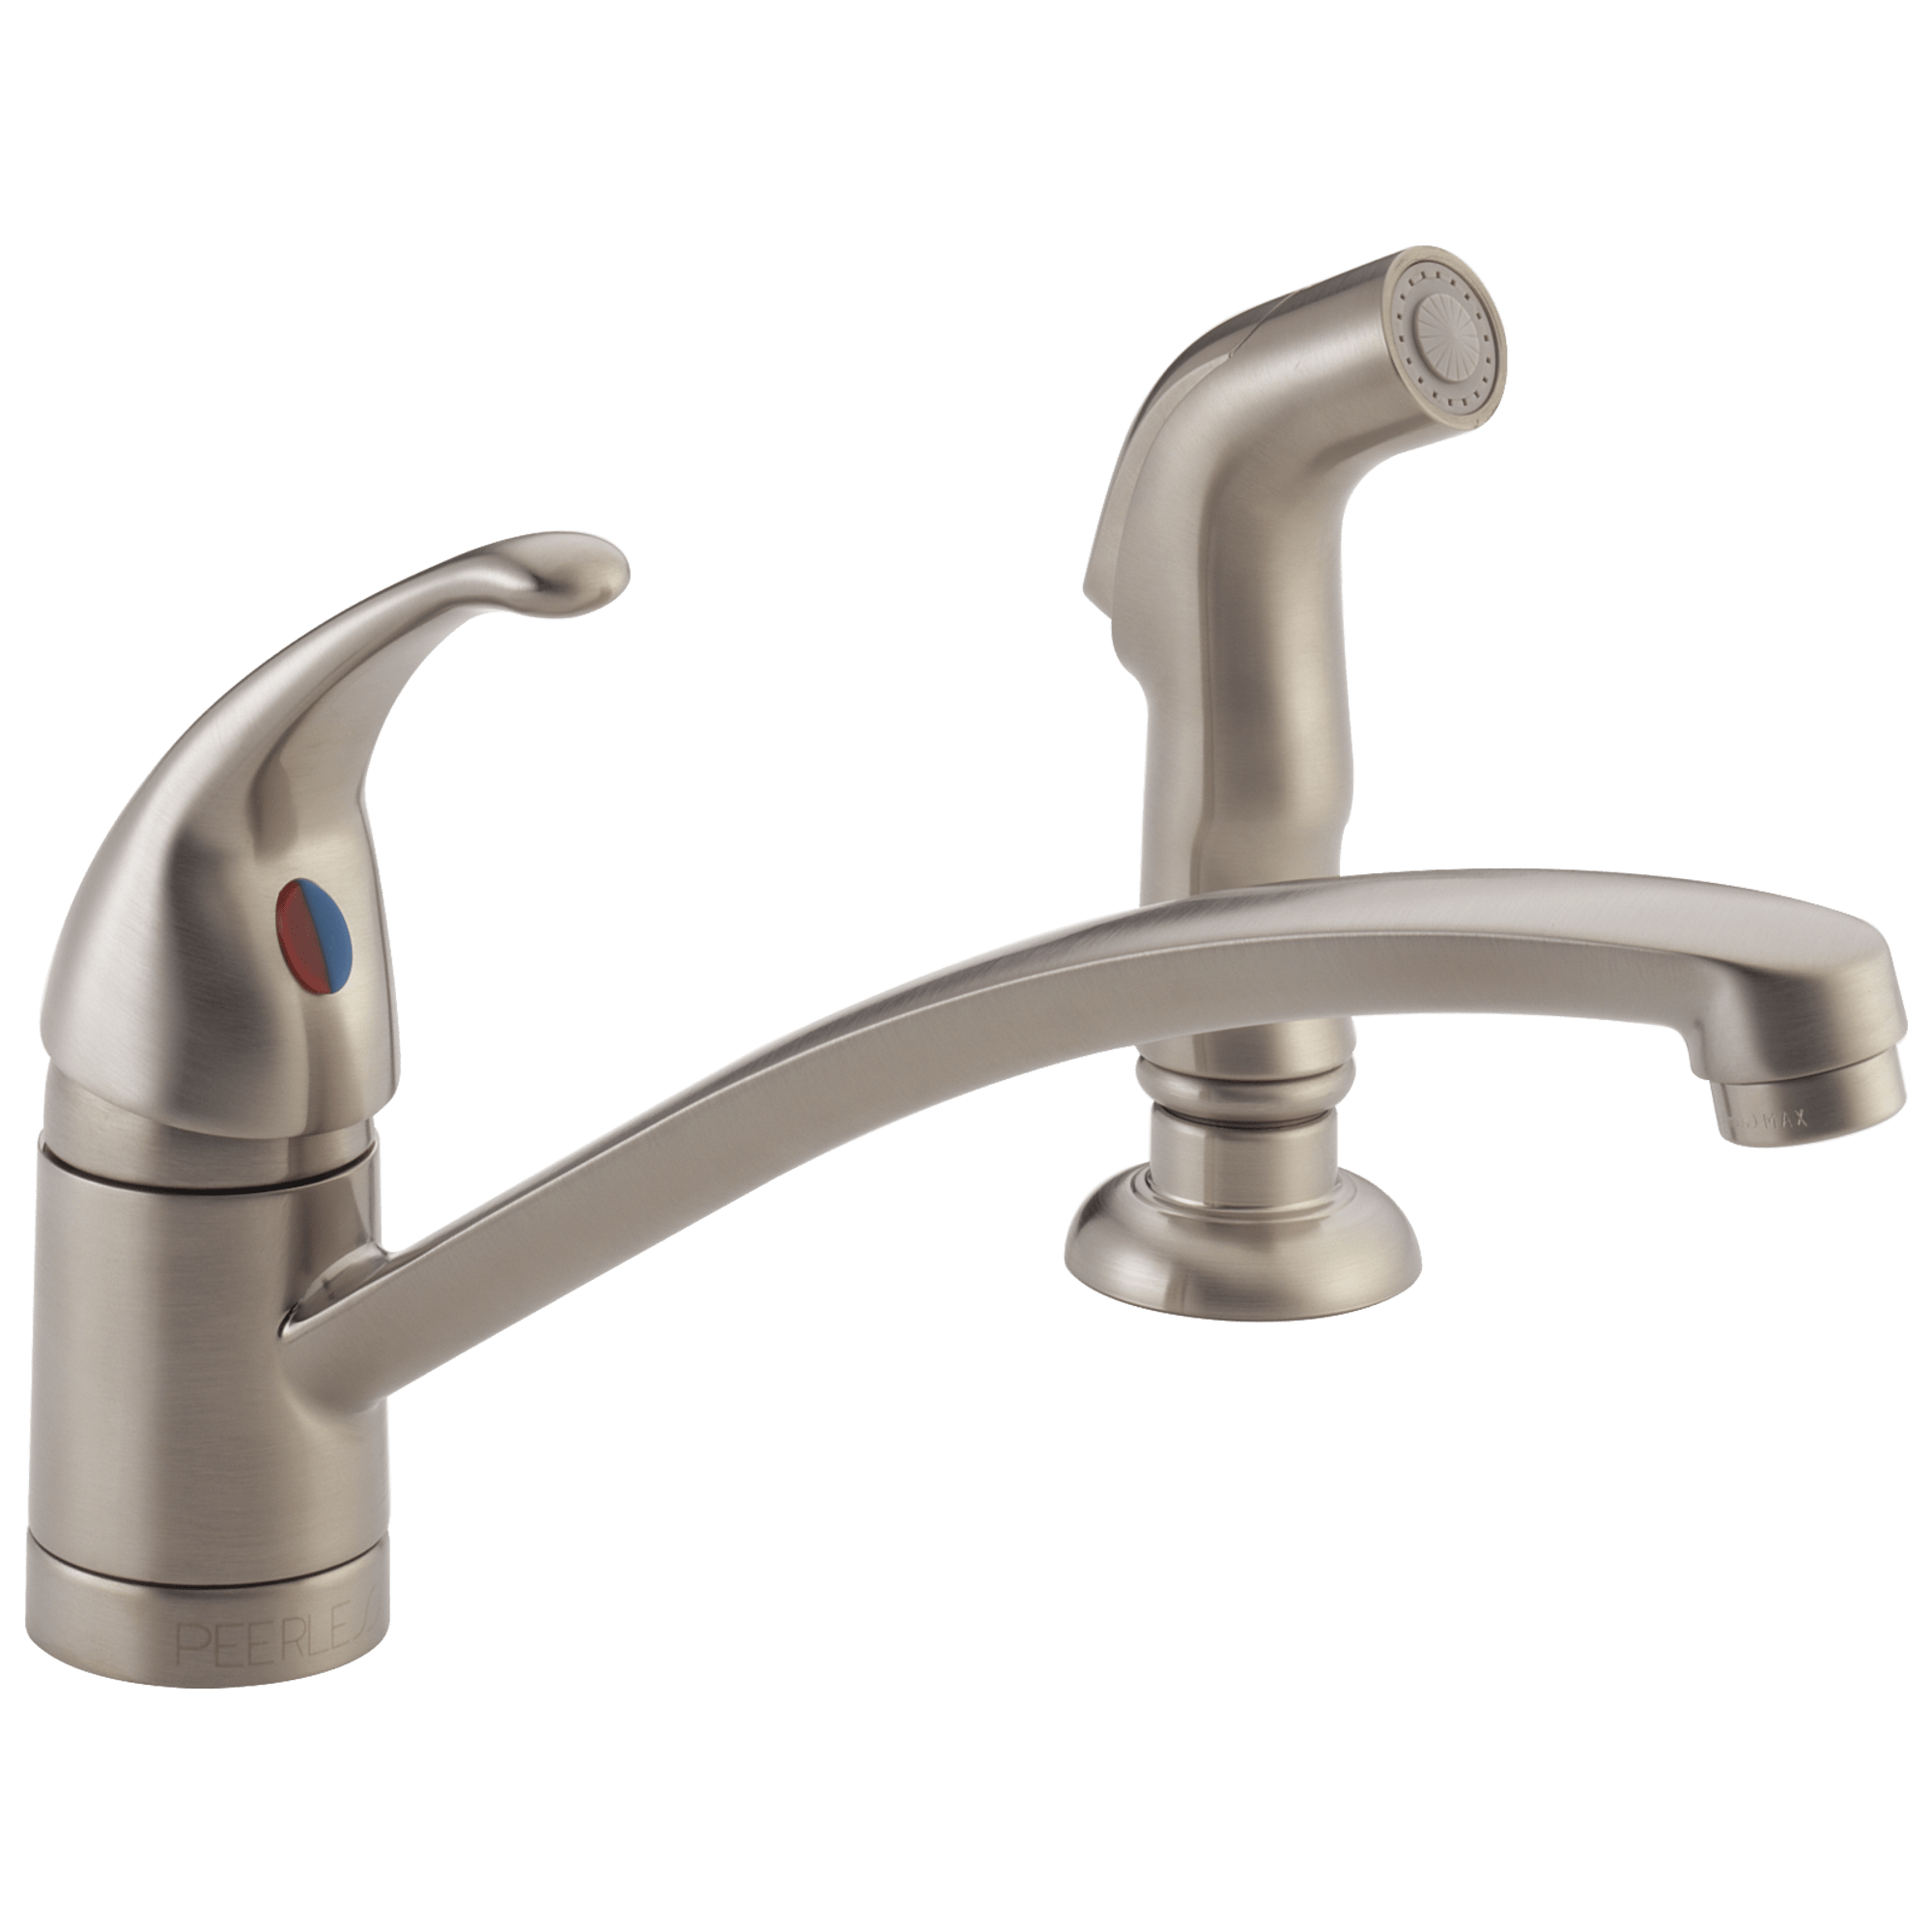 PLF SS single handle kitchen faucet Single Handle Kitchen Faucet with Matching Side Spray